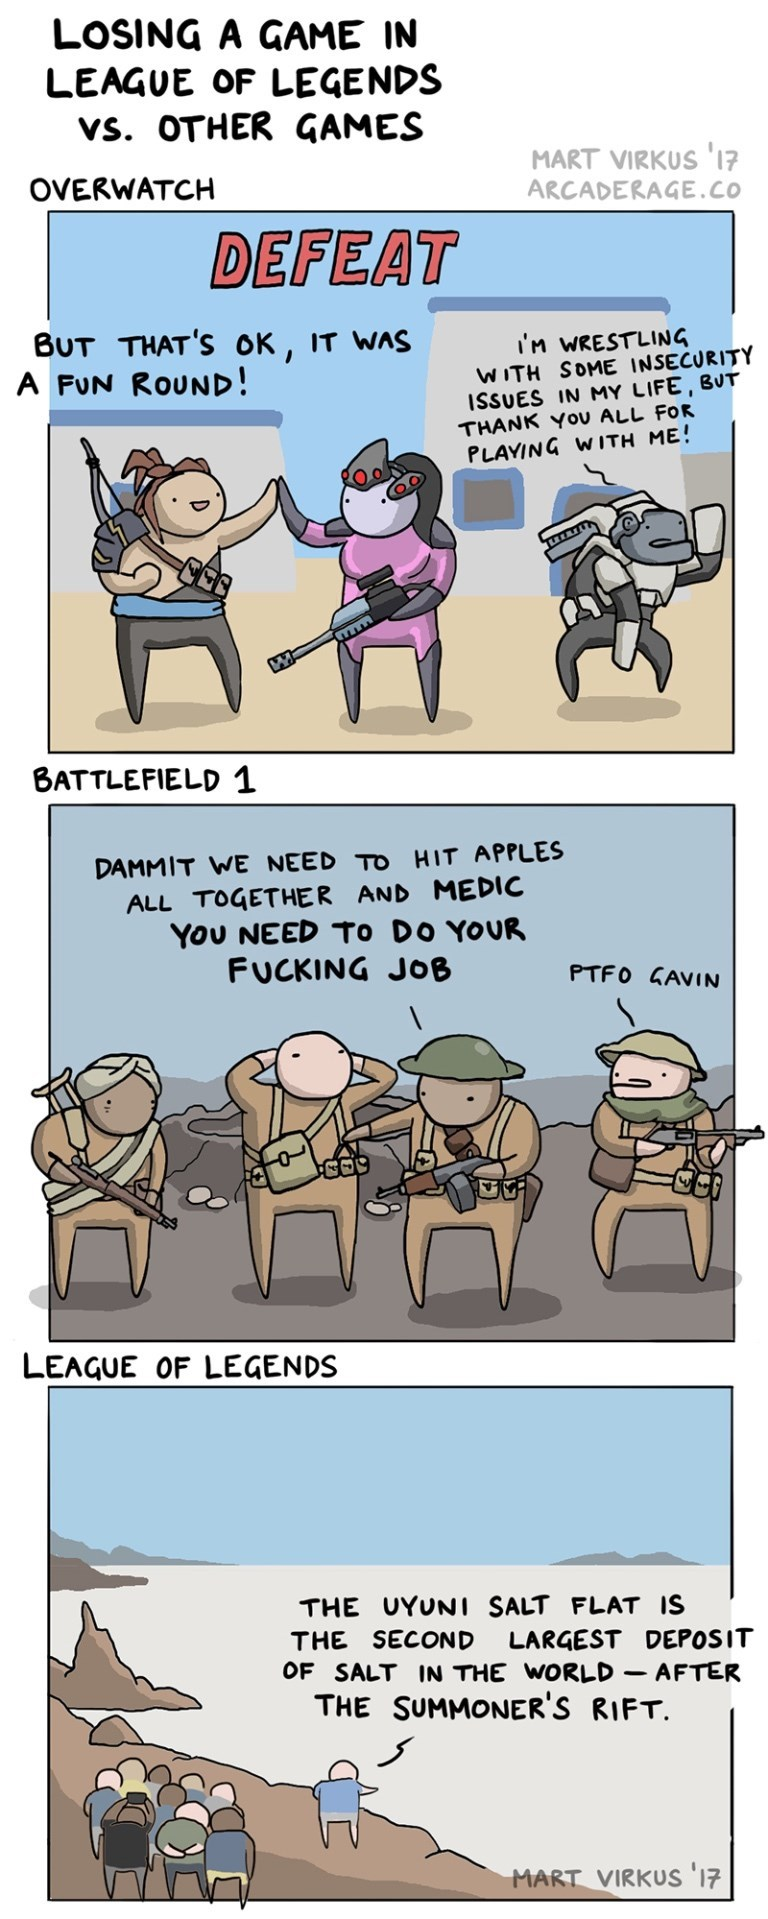 Cartoon - LOSING A GAME IN LEAGUE OF LEGENDS vs. OTHER GAMES MART VIRKUS 'I7 ARCADERAGE.co OVERWATCH DEFEAT BUT THAT'S OK, IT WAS A FUN ROUND! IM WRESTLING WITH SOME INSECURITY ISSUES IN MY LIFE, BUT THANK Yov ALL FOR PLAYING W ITH ME! BATTLEFIELD 1 DAMMIT WE NEED TO HIT APPLES ALL TOGETHER AND MEDIC YoU NEED To DO YOUR FUCKING JOB PTFO GAVIN LEAGUE OF LEGENDS THE UYUNI SALT FLAT IS THE SECOND LARGEST DEPOSIT OF SALT IN THE WORLD - AFTER THE SUMMONER'S RIFT MART VIRKUS 17